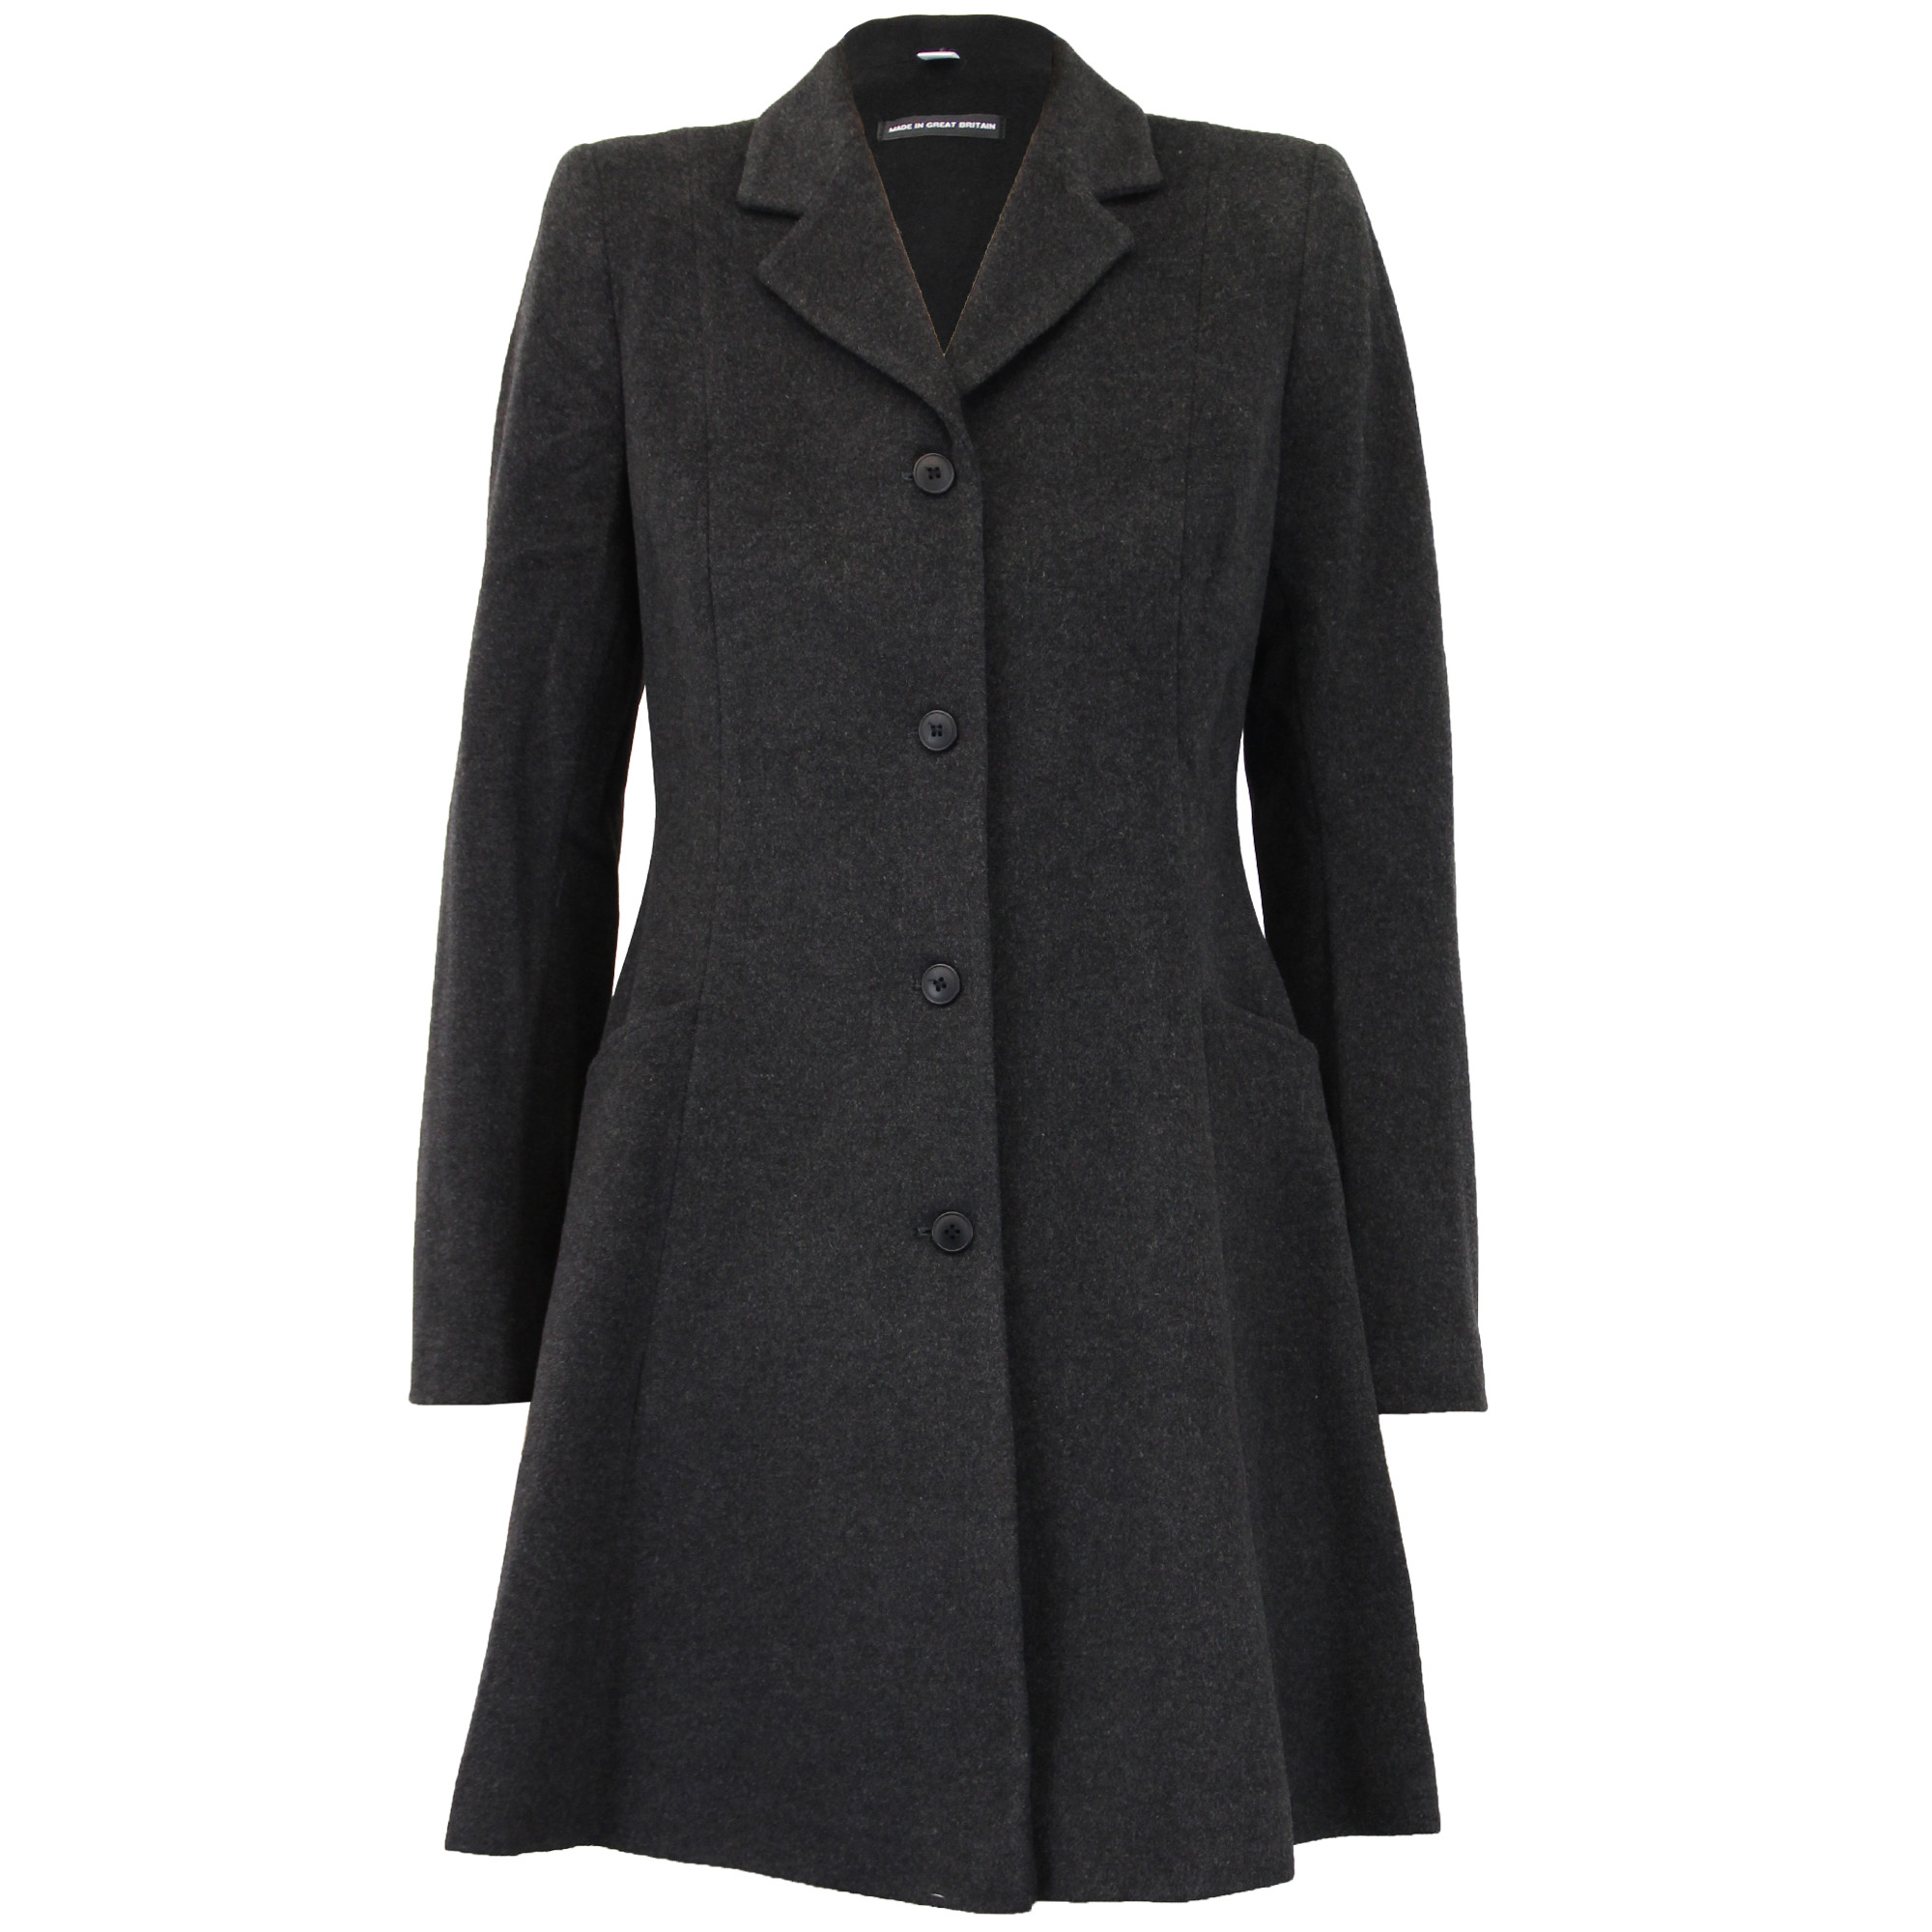 Womens warm winter coat